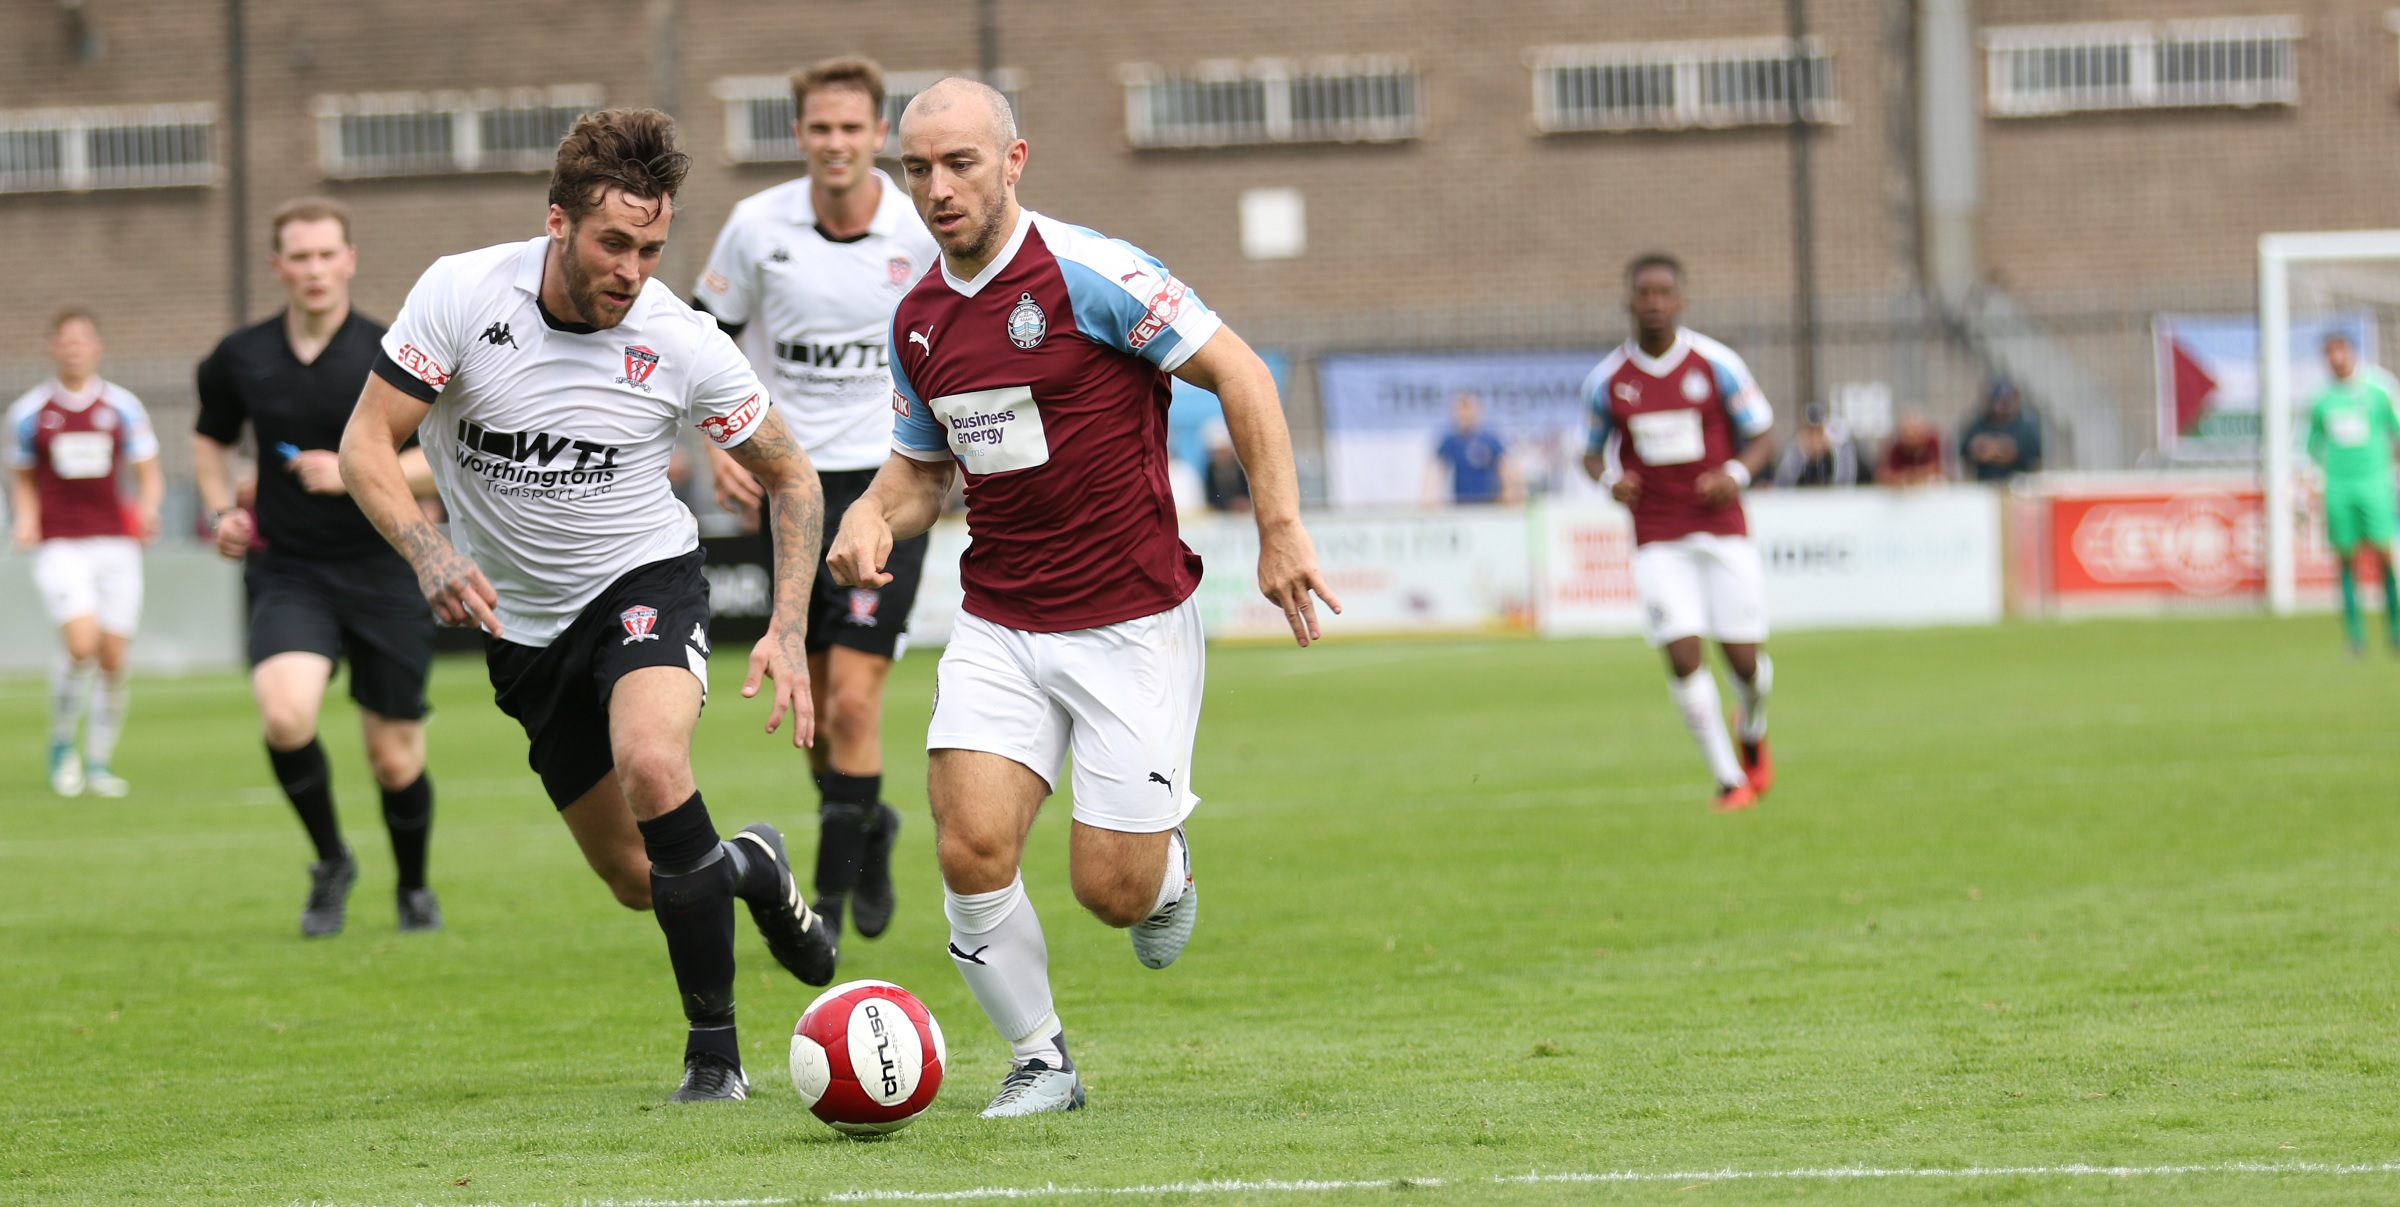 Stalybridge Celtic 0-1 South Shields: Cogdon's 50th secures victory